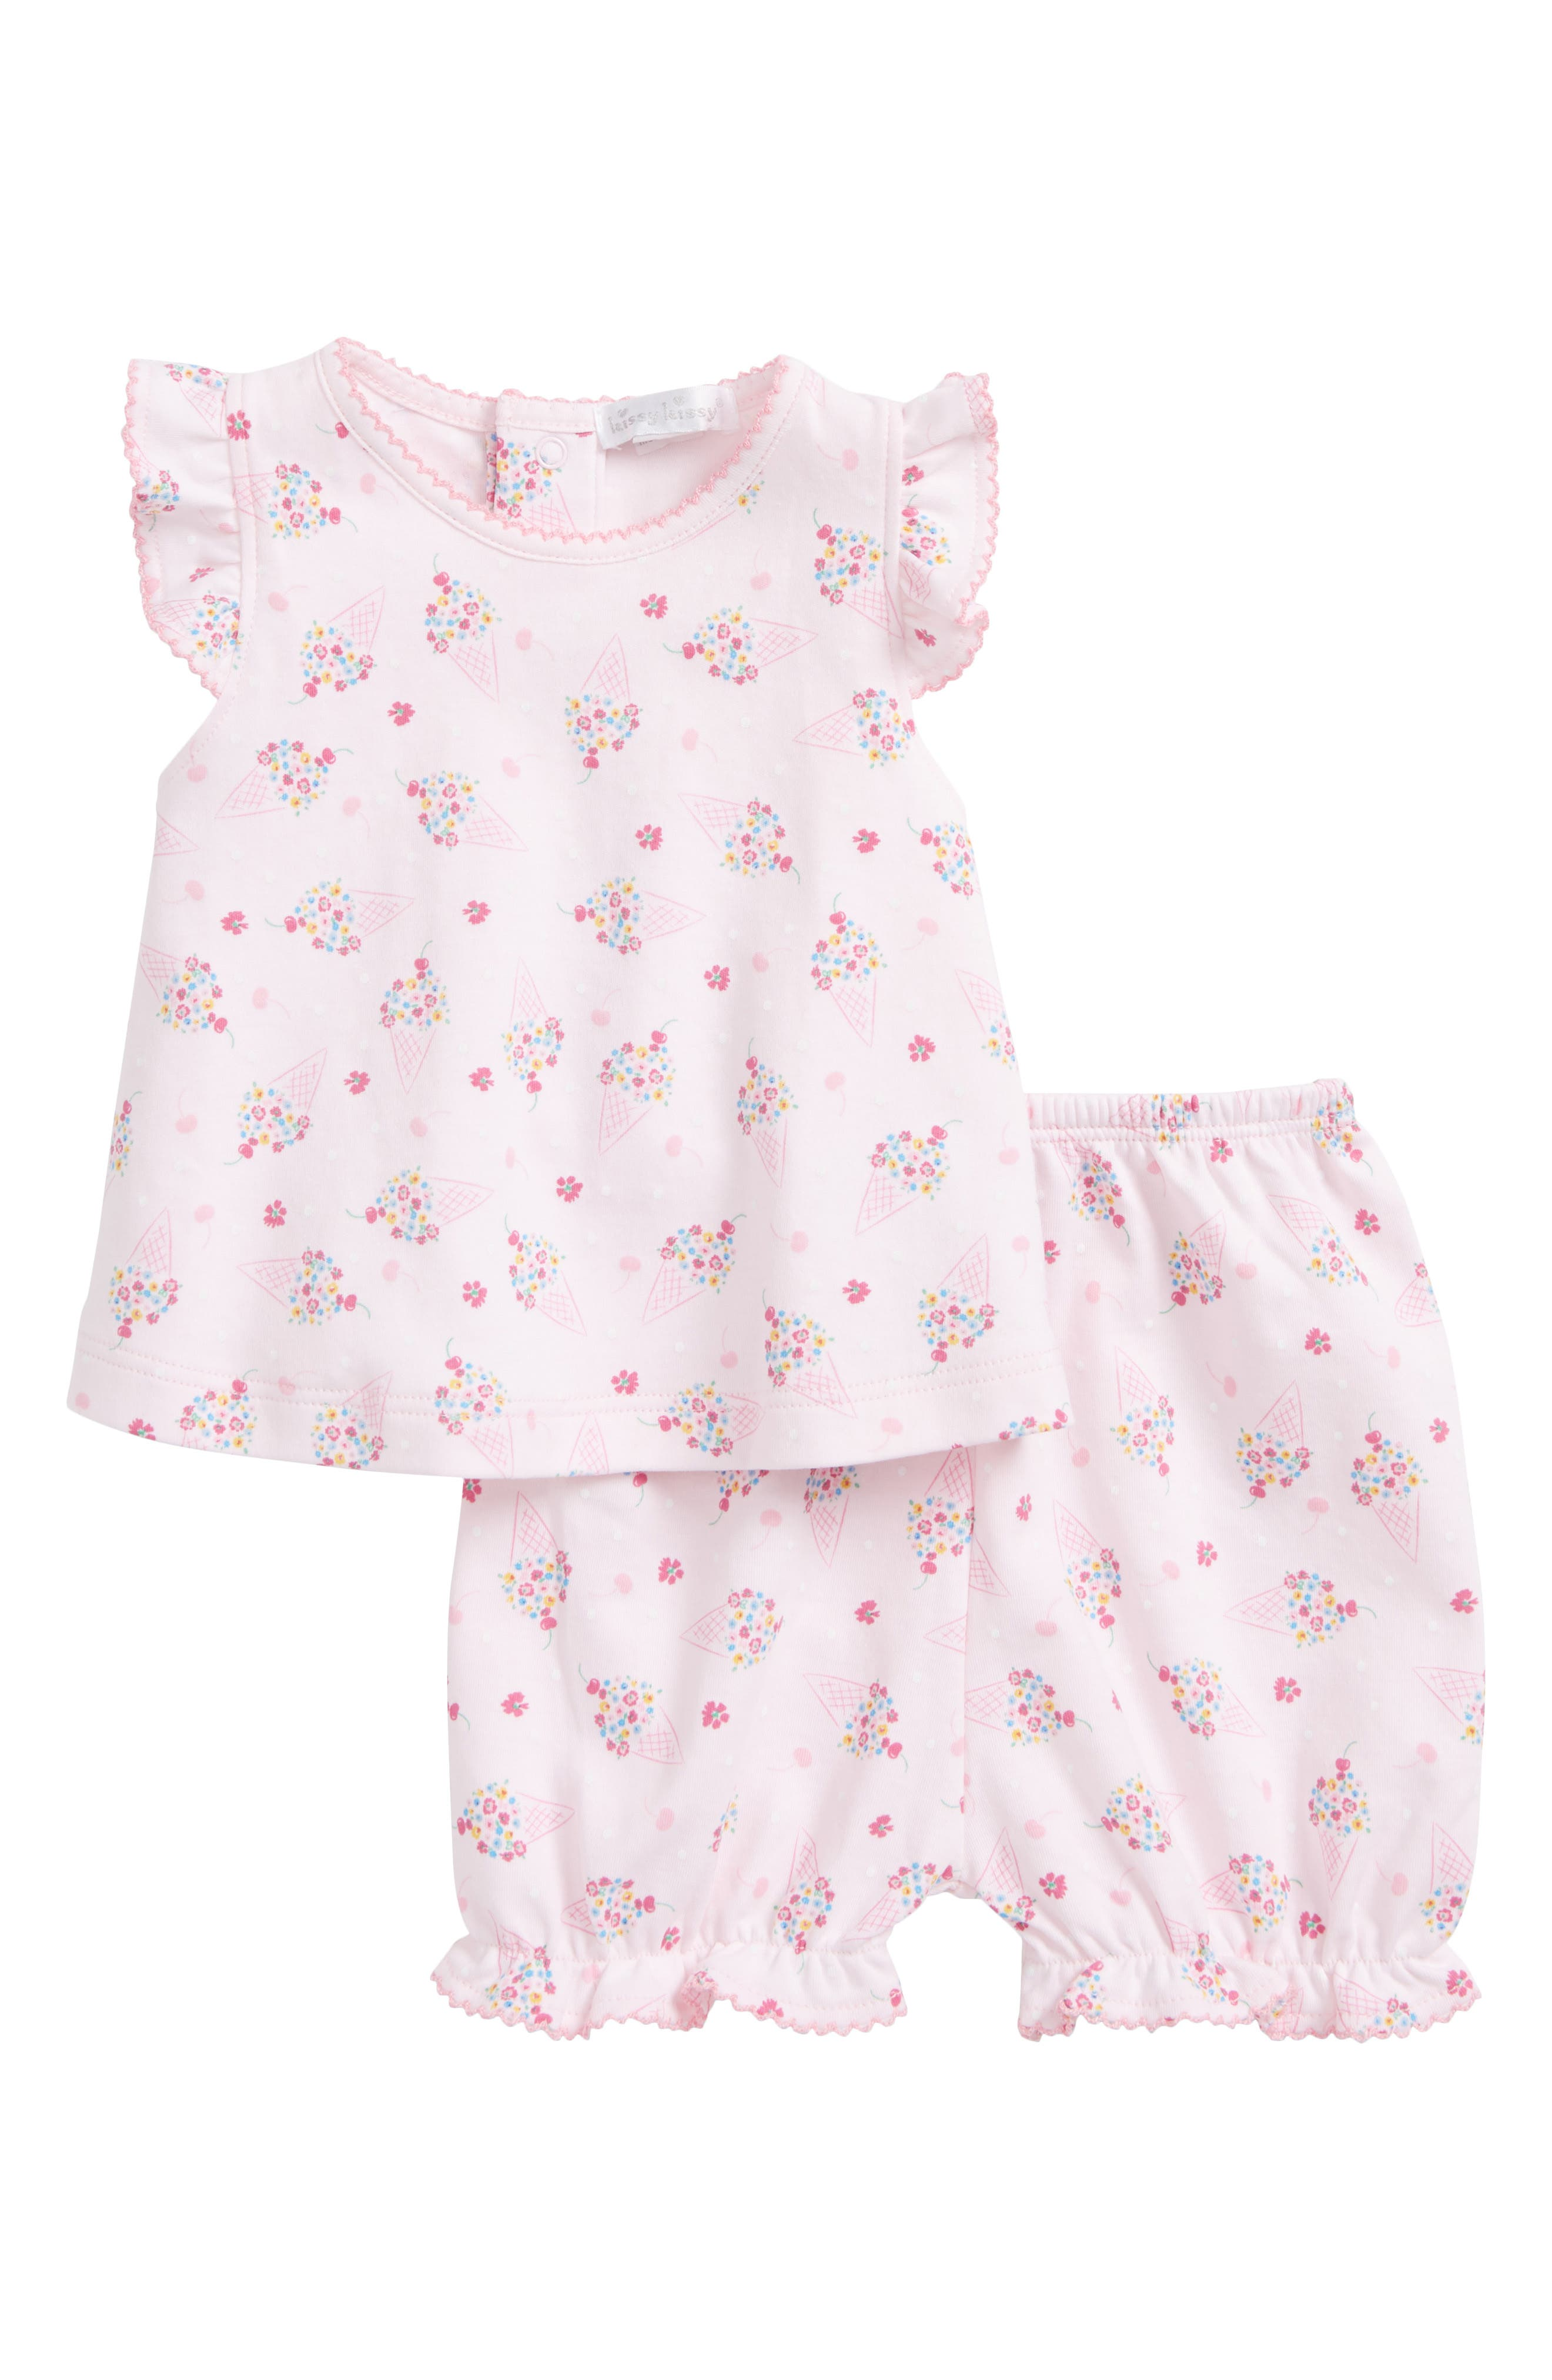 Kissy Kissy Cherry on Top Print Top & Shorts Set (Baby Girls)